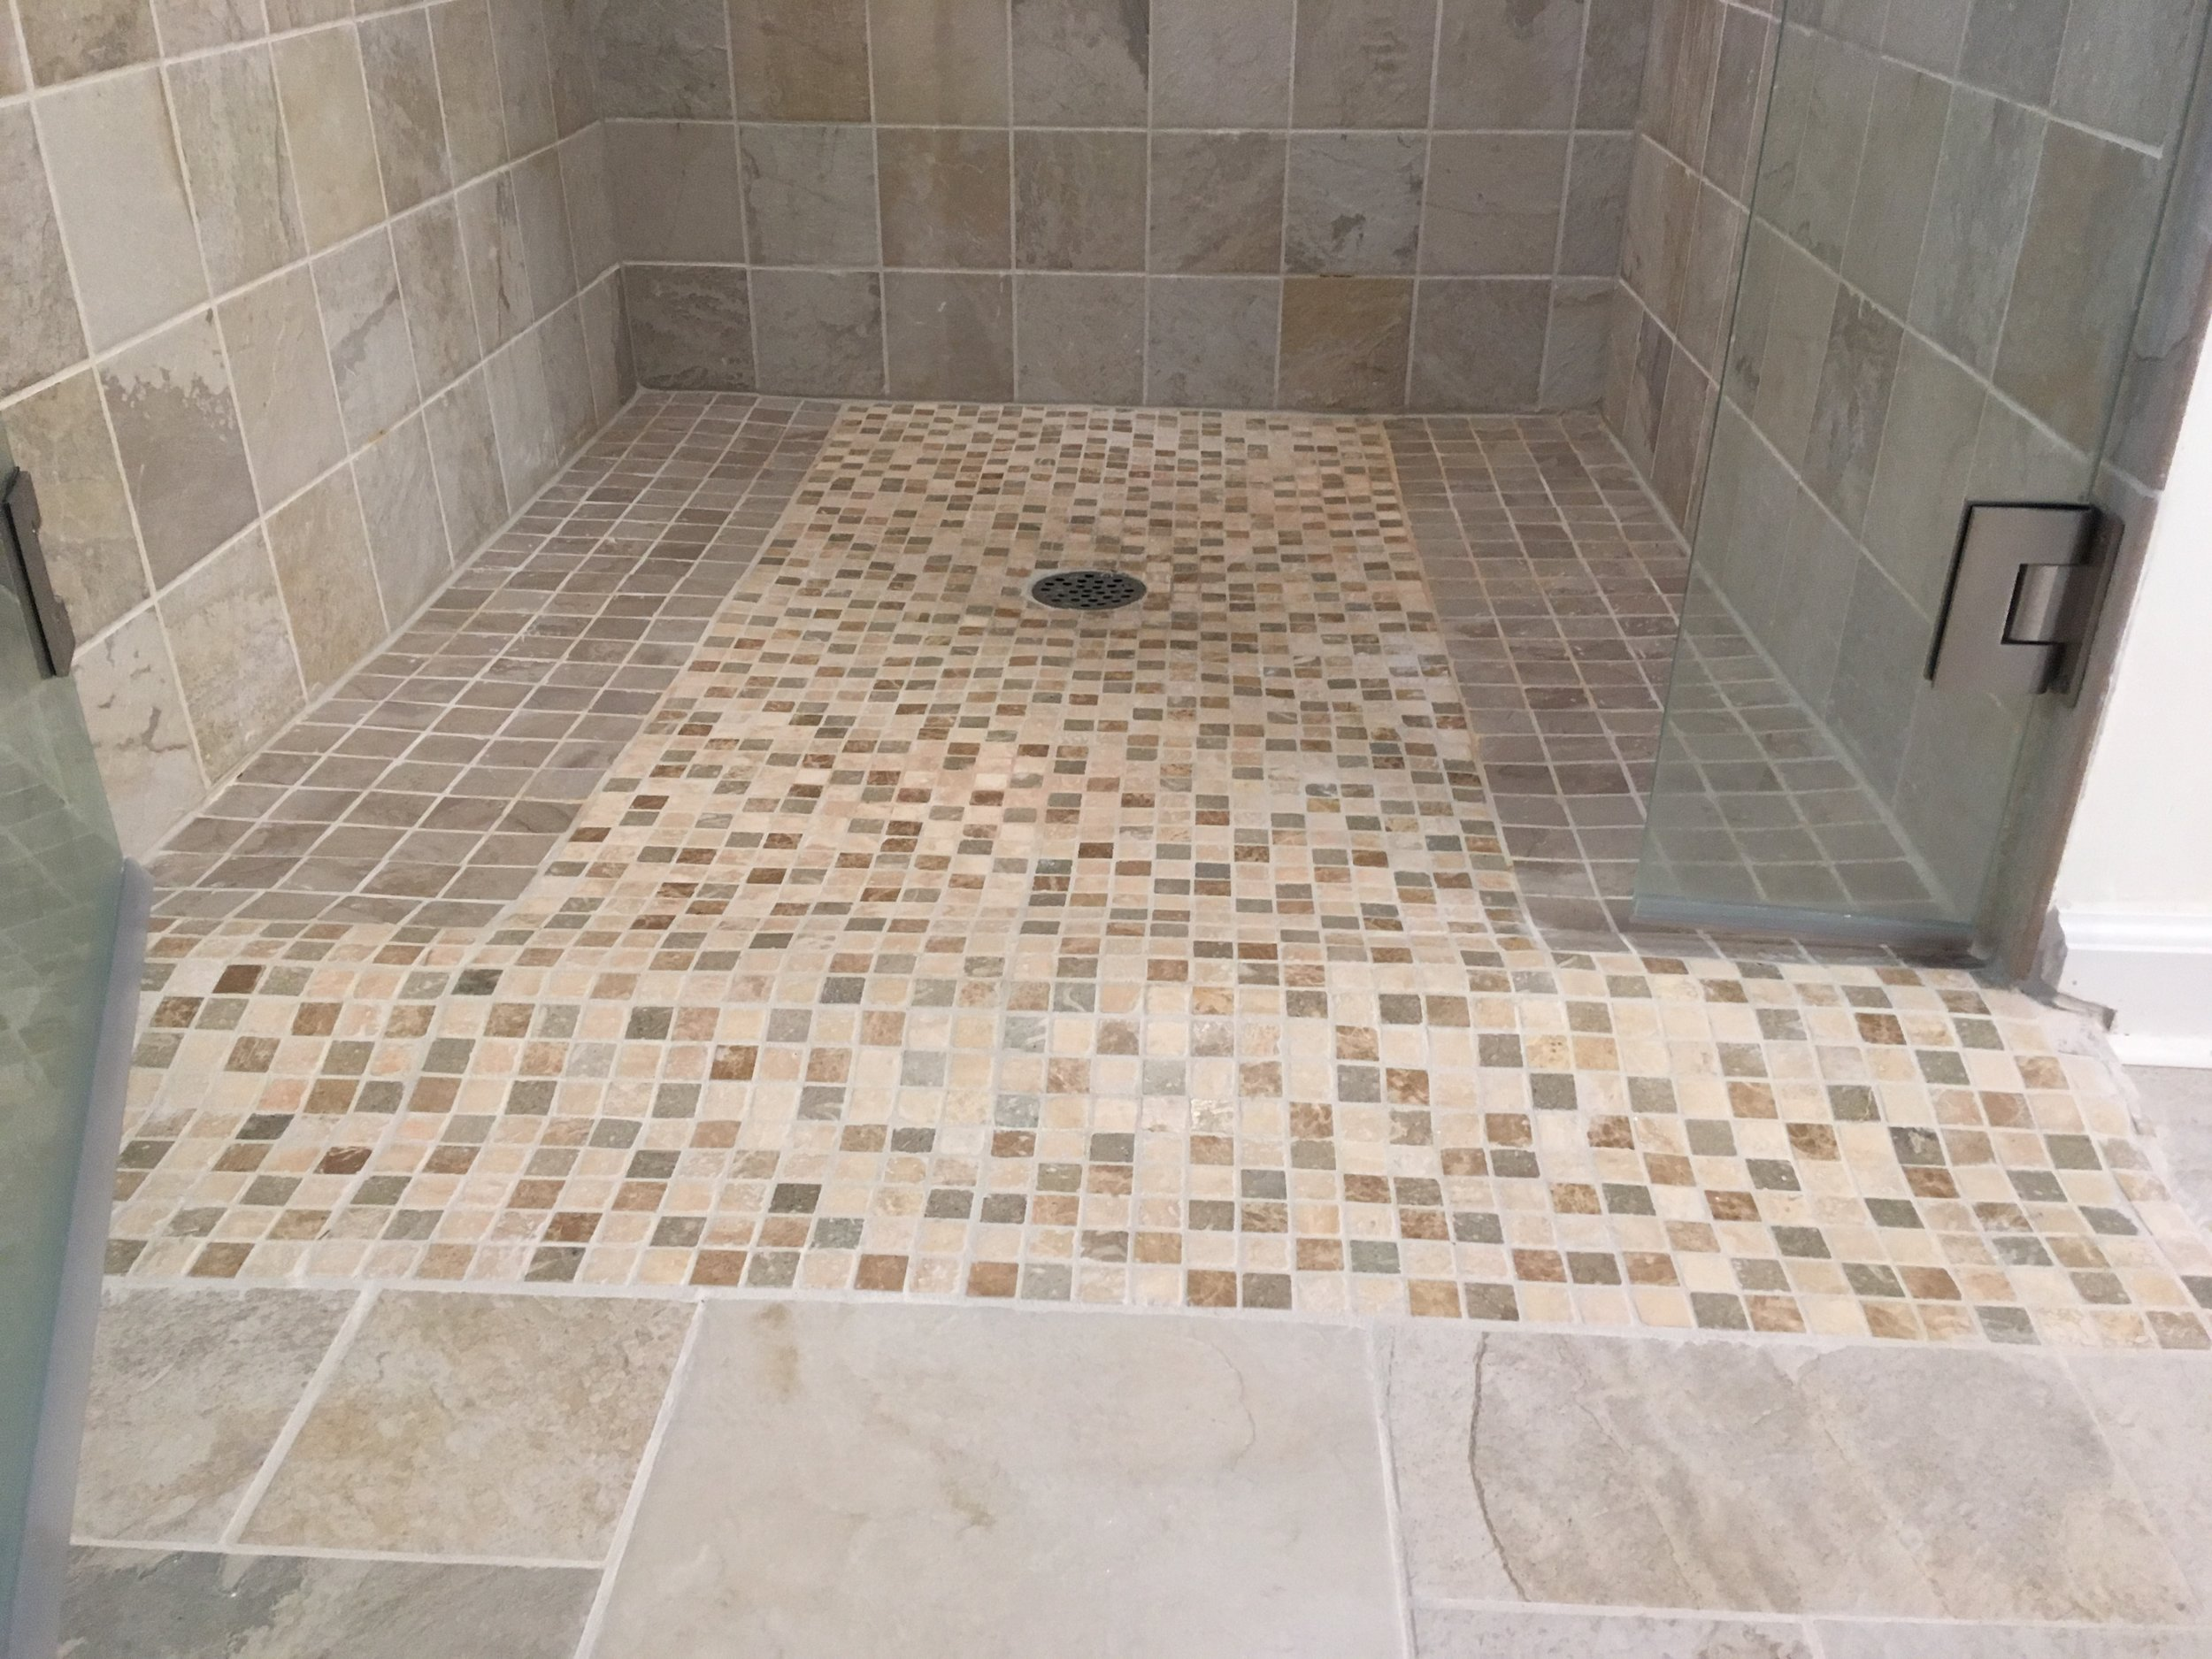 New tiled bathroom complete with Rain-X coating for glass doors, two niches, all new shower plumbing fixtures and tiles.